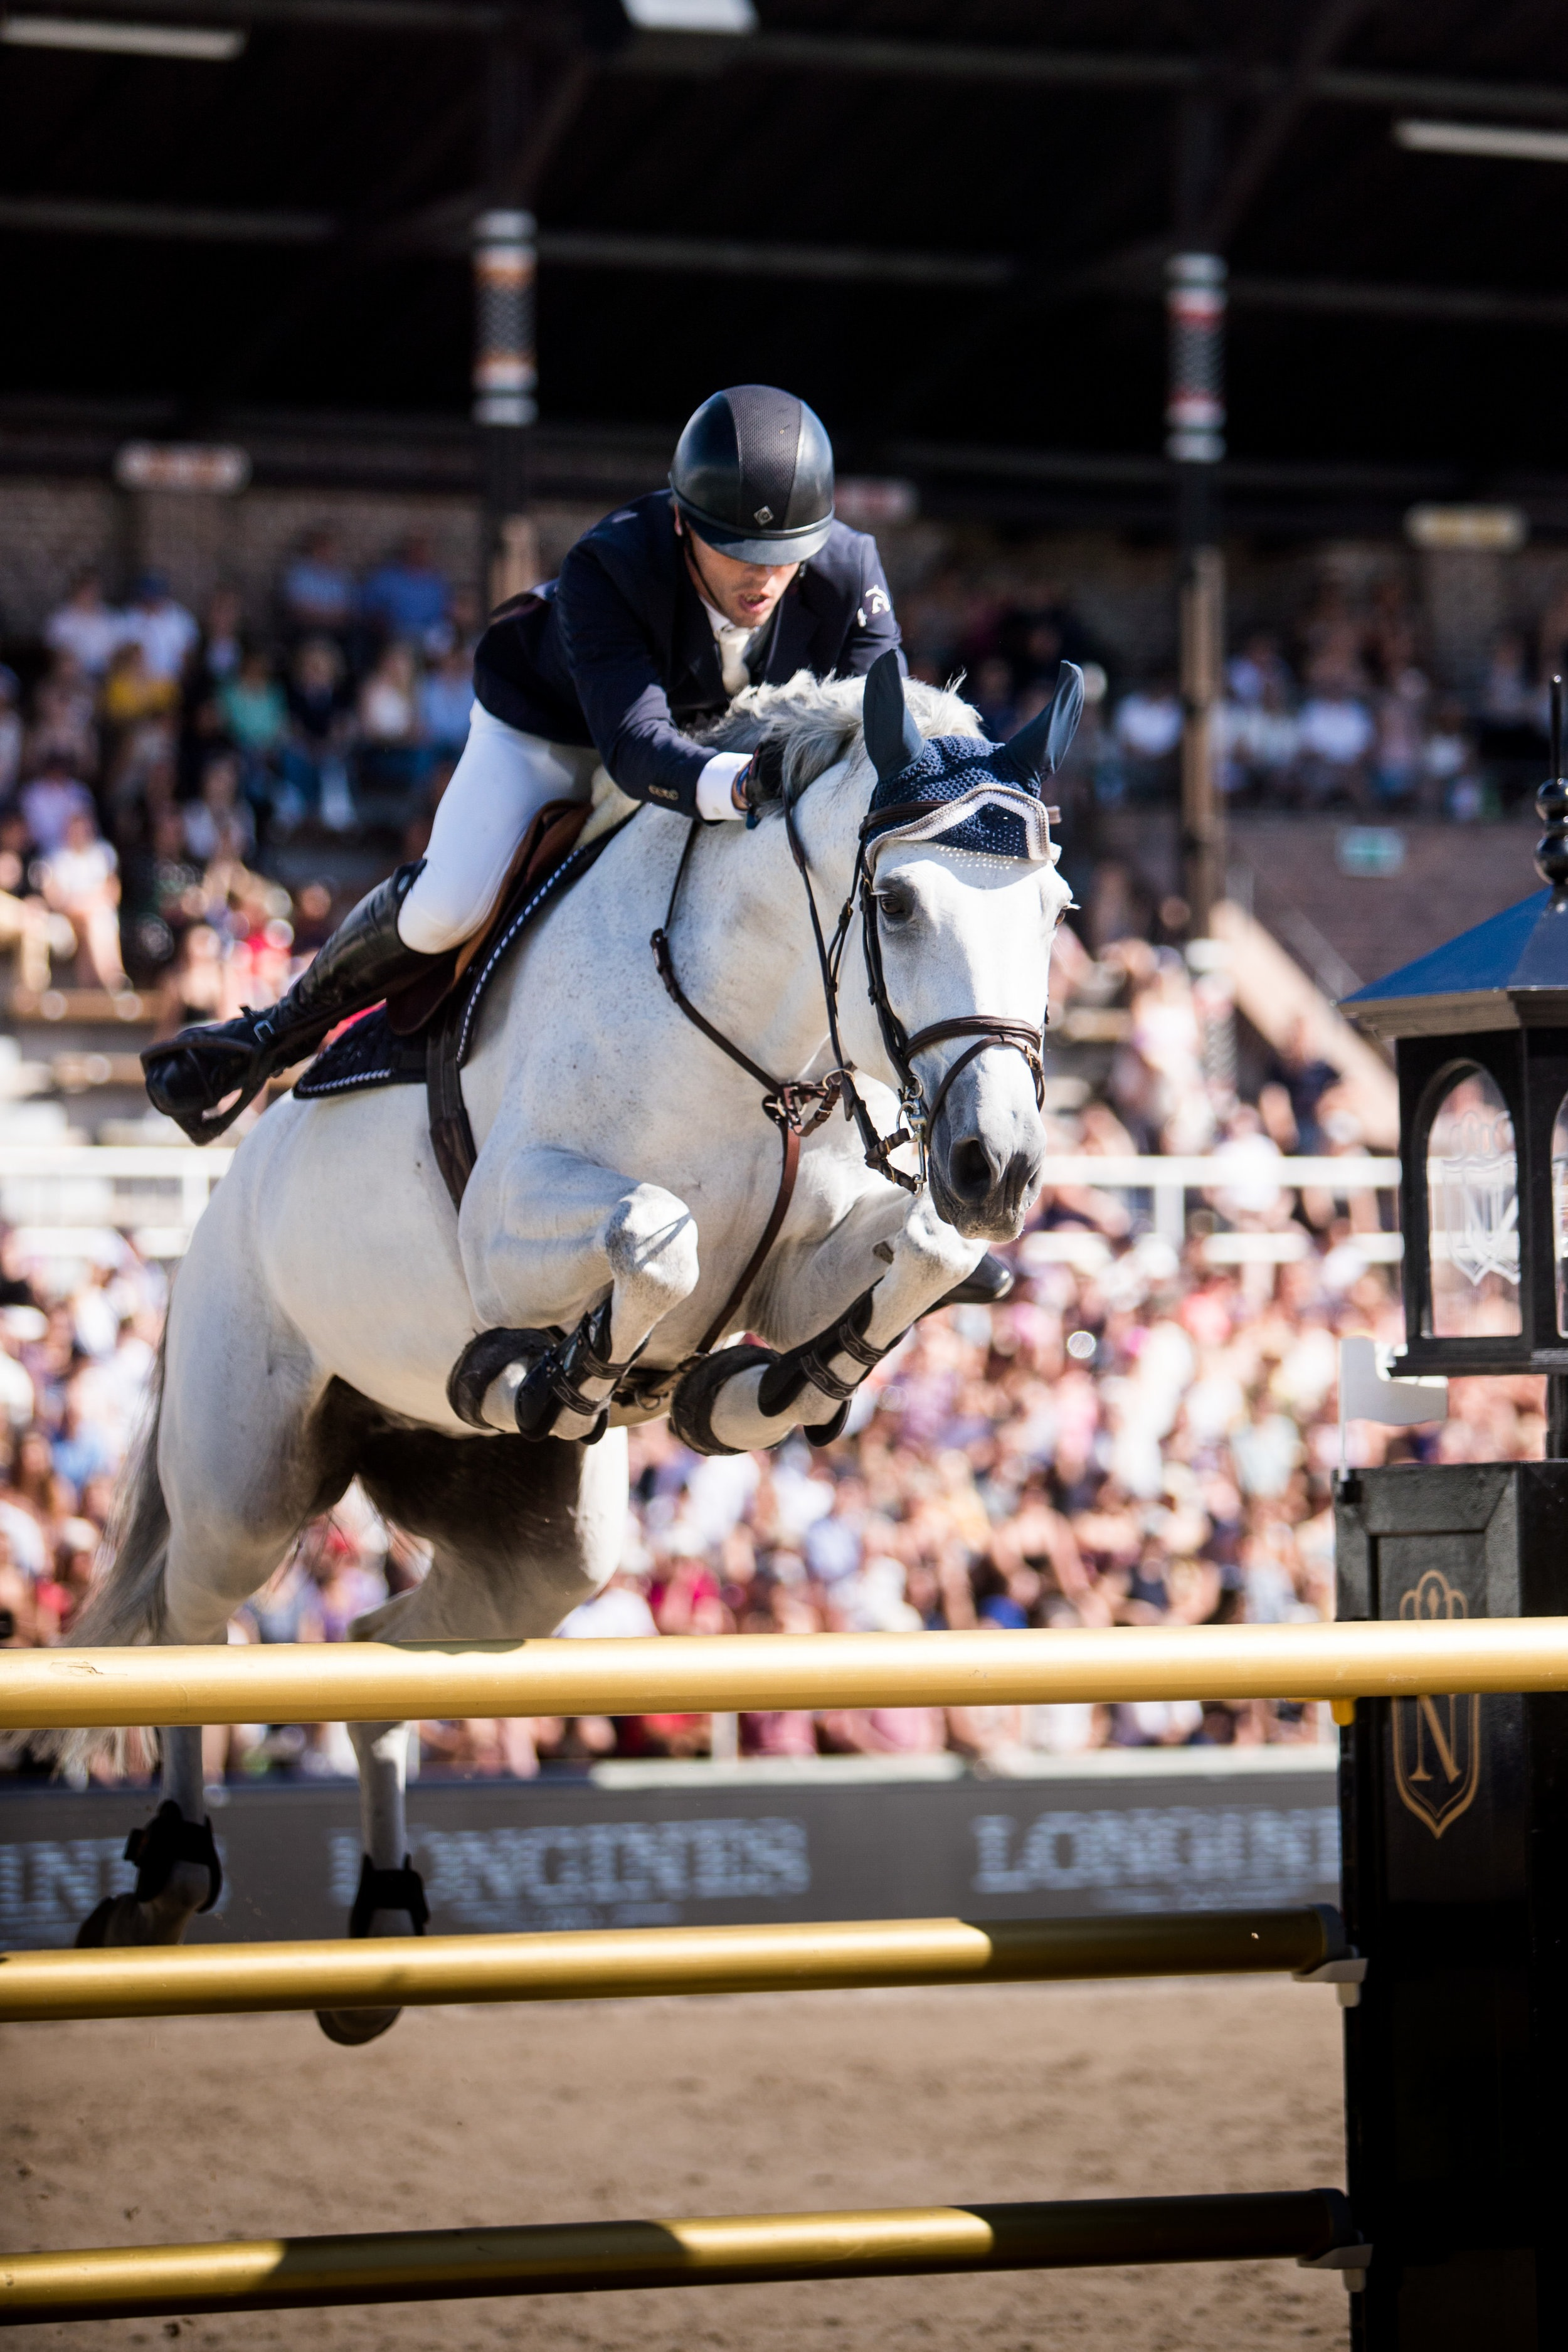 Harrie Smolders and Une de l'Othain at Longines Global Champions Tour of Stockholm 2019. Photo by Ashley Neuhof Photography.